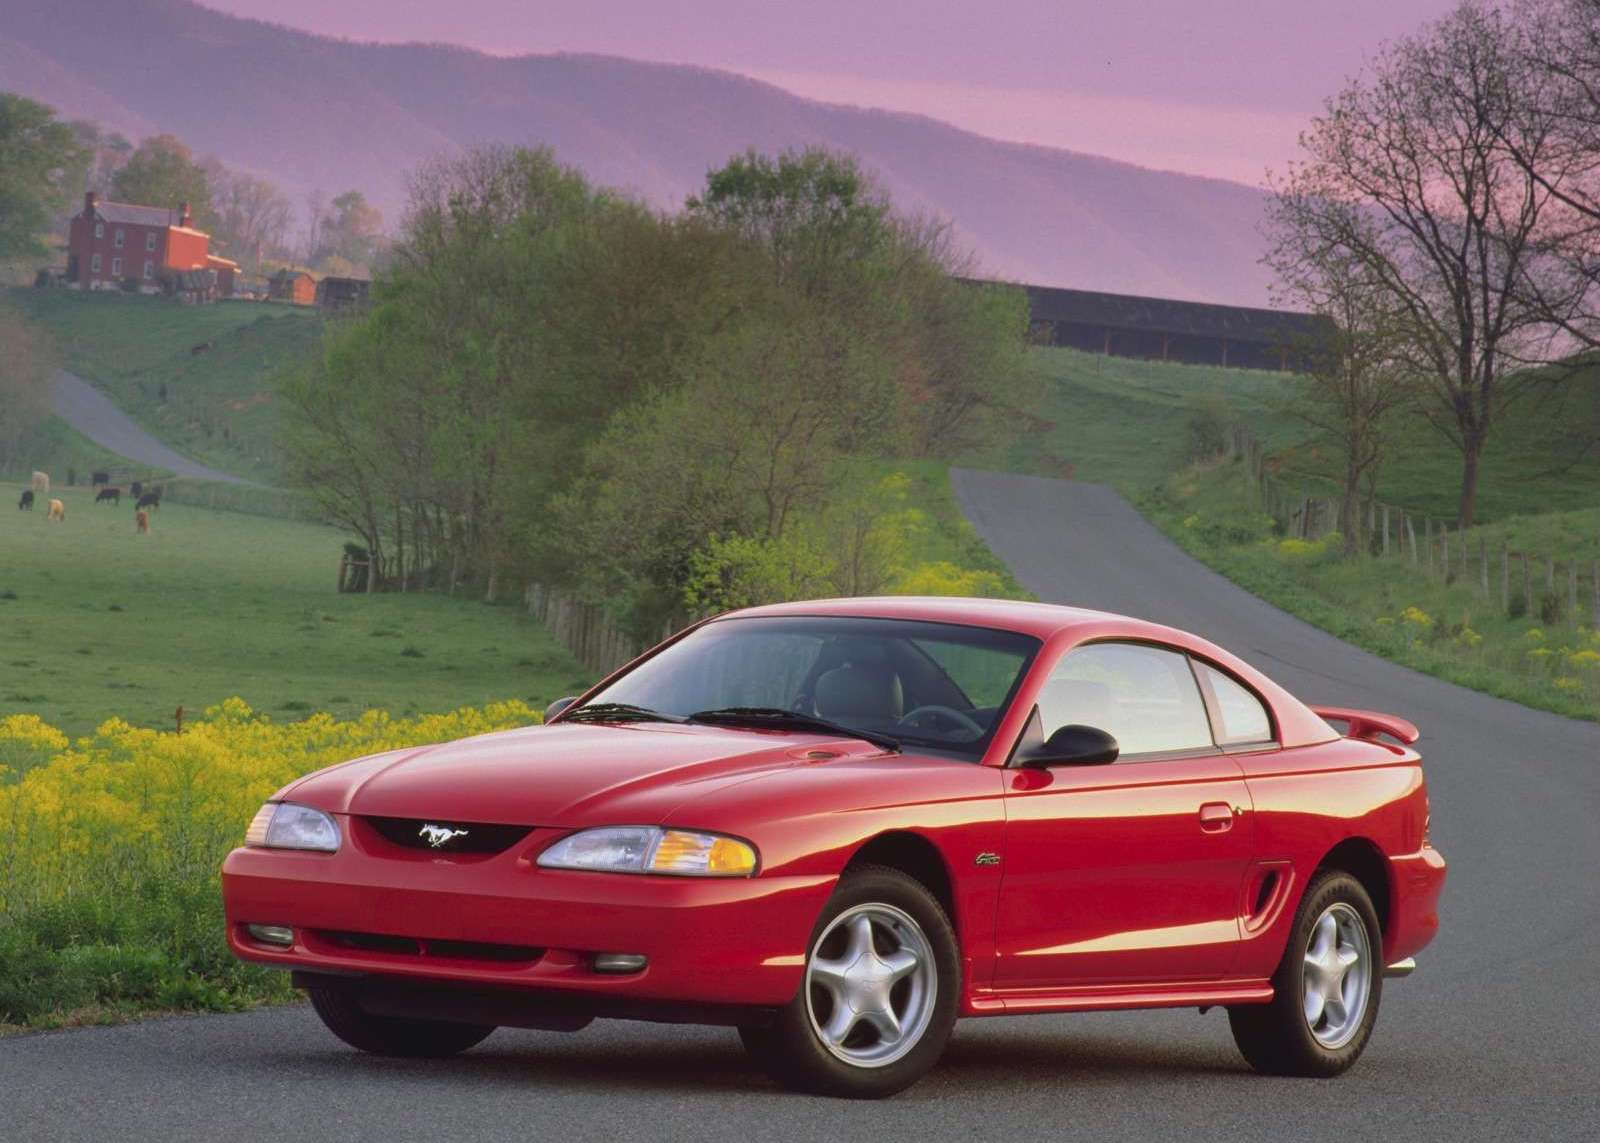 1996 Ford Mustang GT red 3/4 front